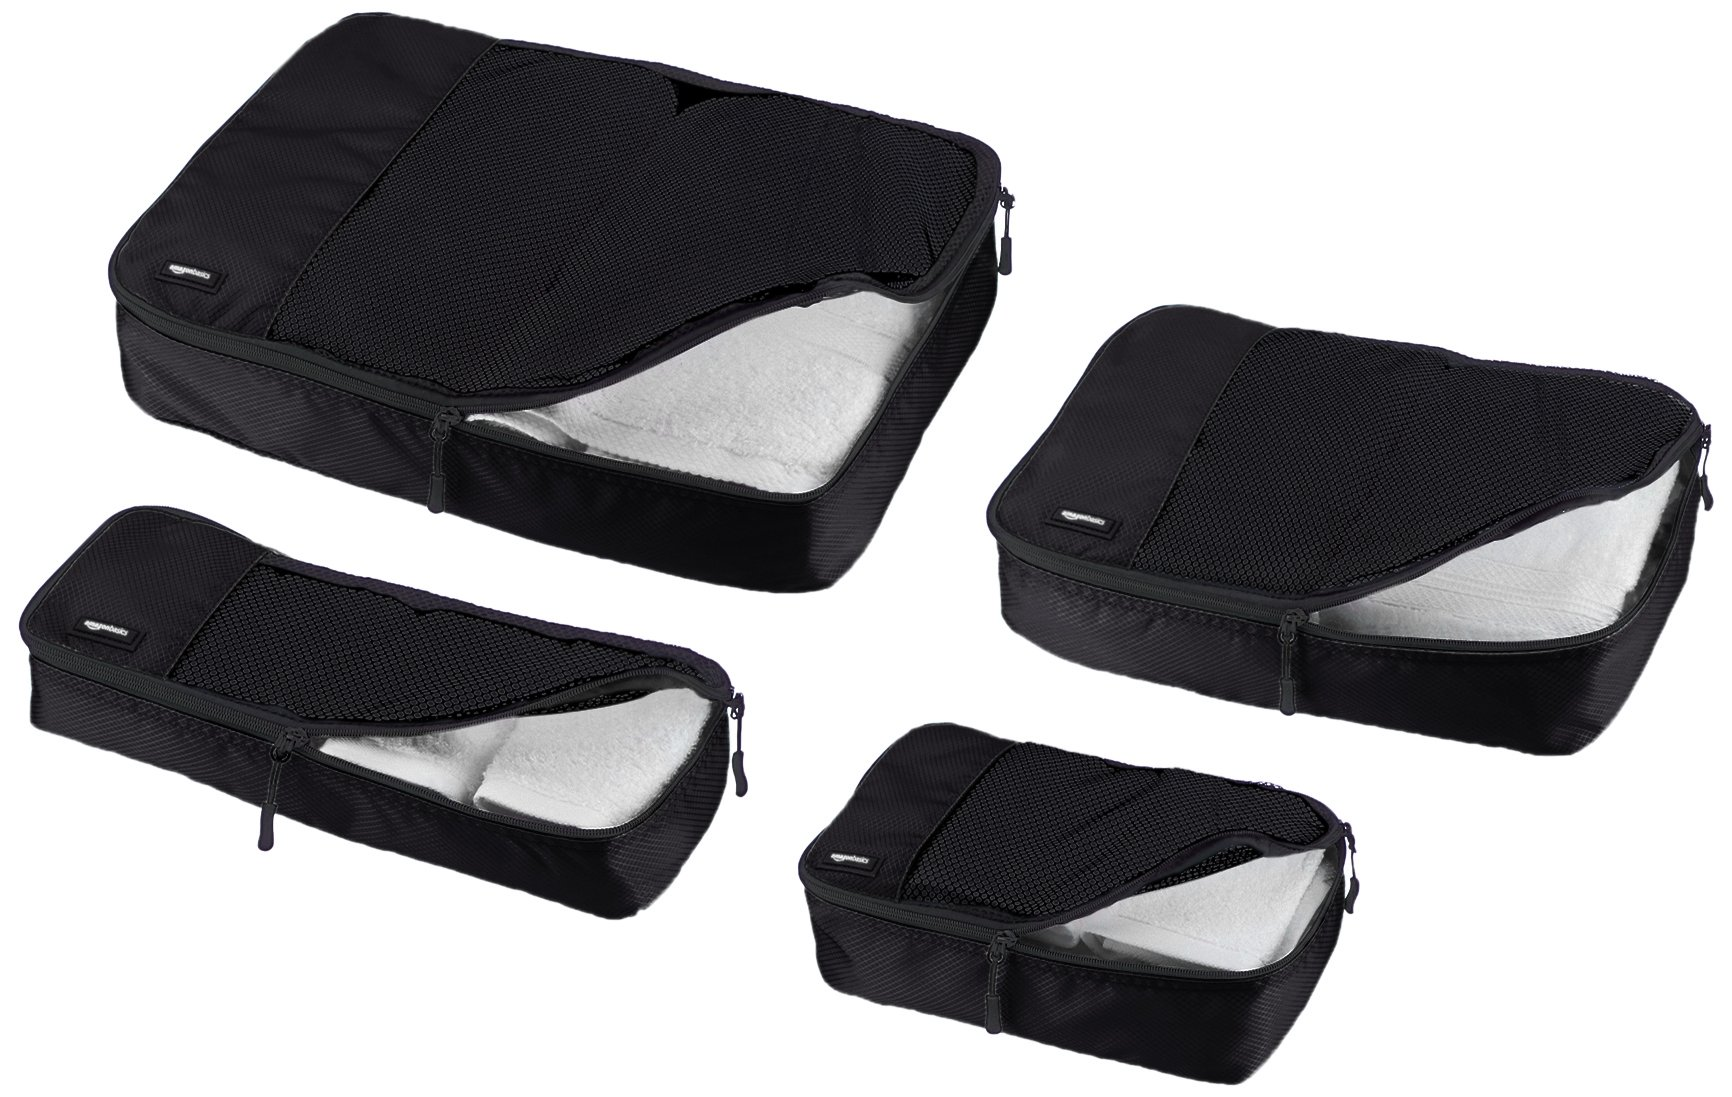 AmazonBasics 4-Piece Packing Cube Set - Small, Medium, Large, and Slim, Black by AmazonBasics (Image #3)